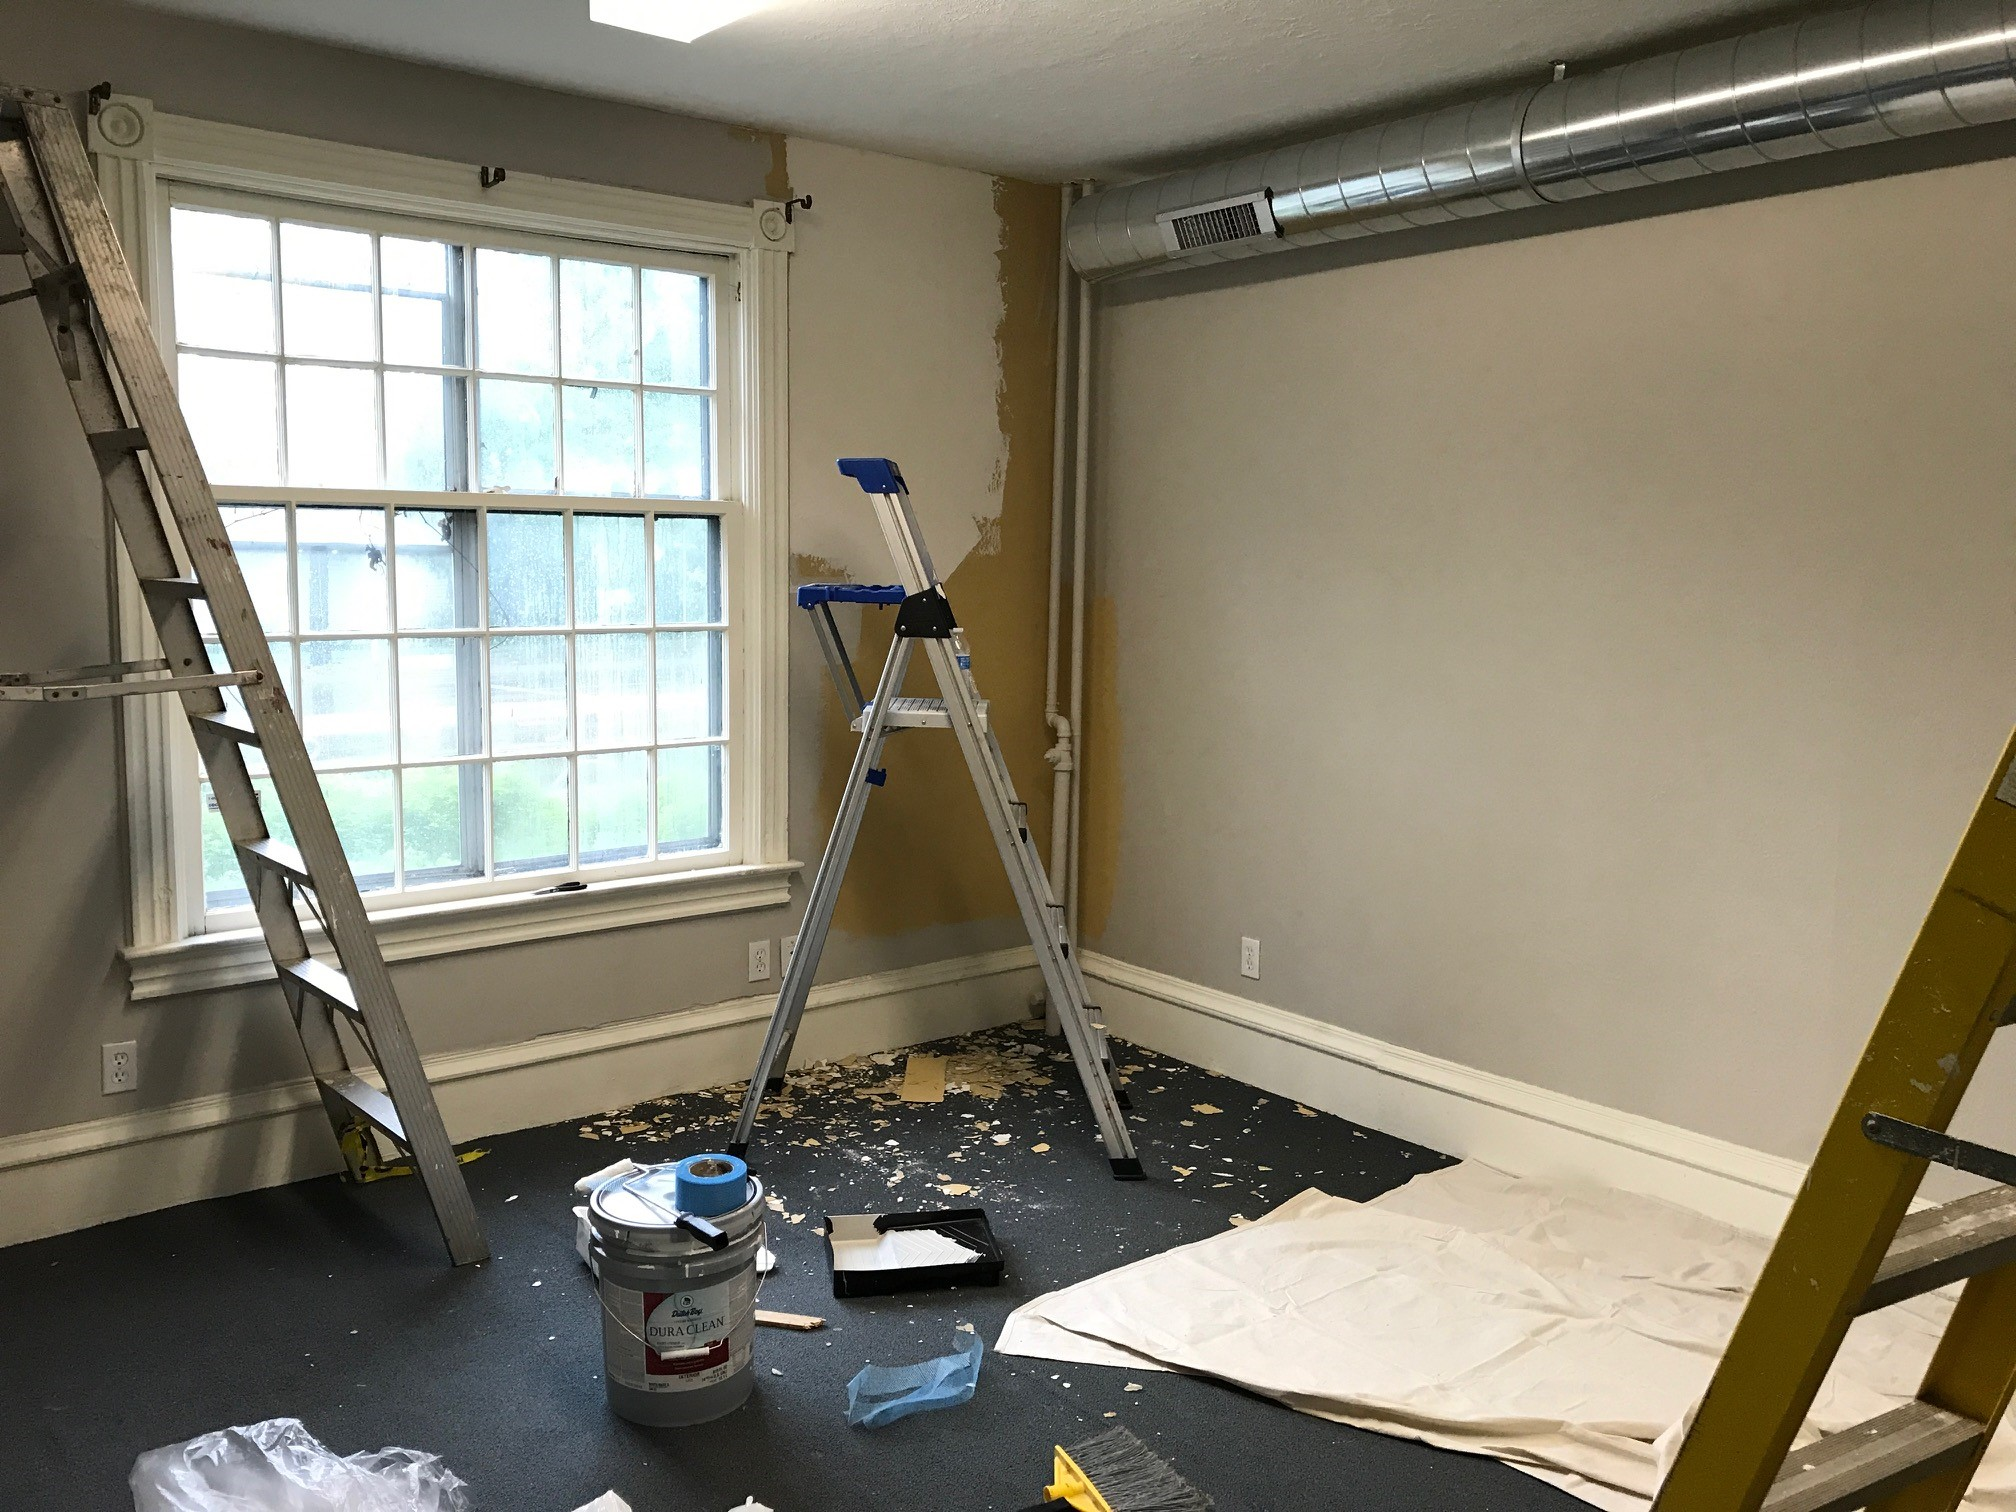 plaster repairs and fresh paint prepare this office area